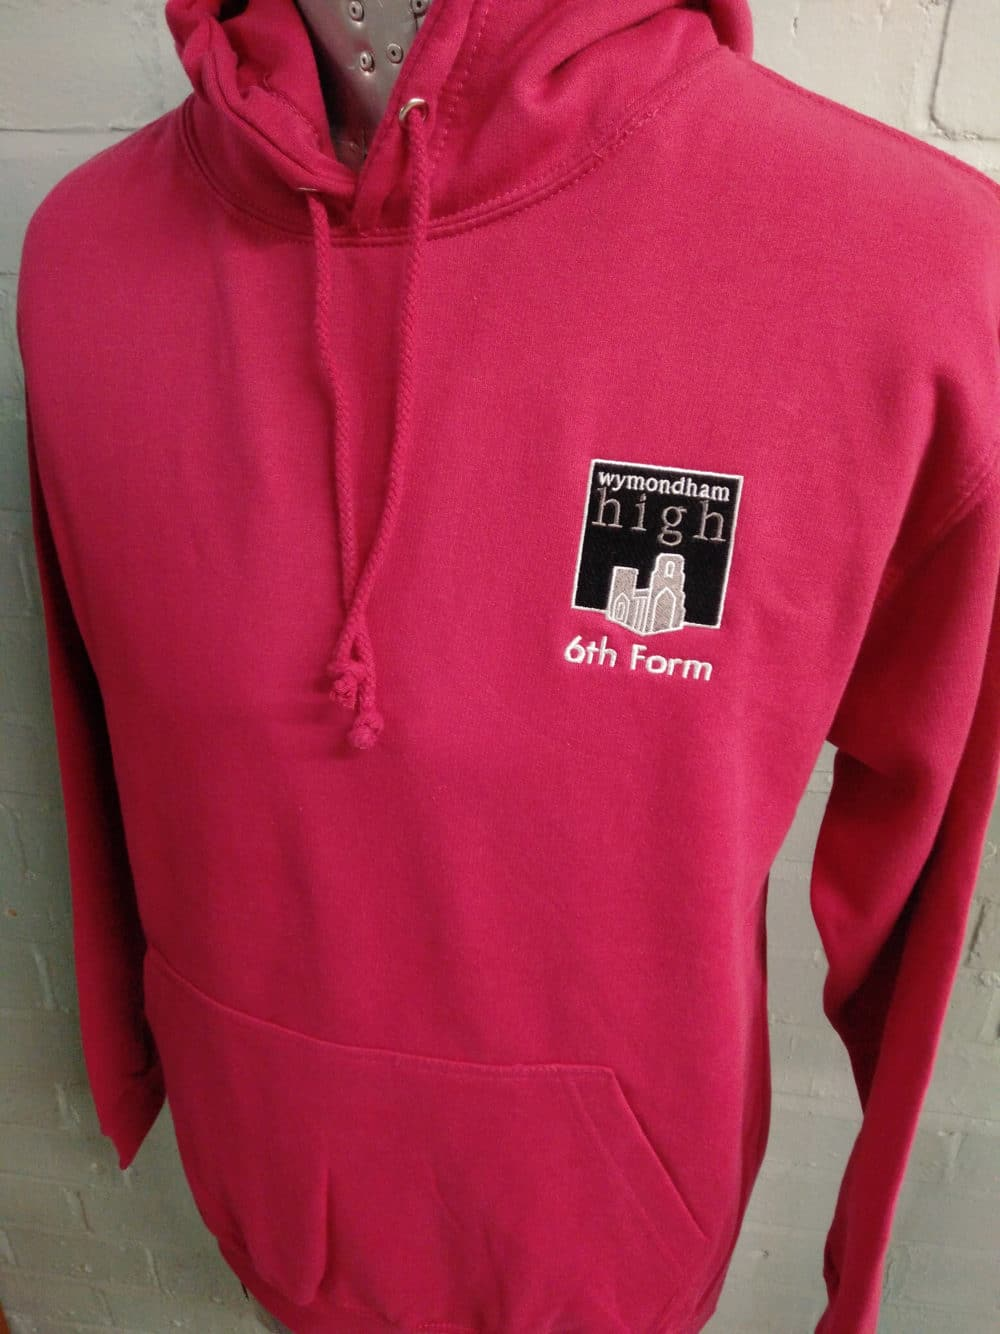 Wymondham Pink Leavers Hoodies Class of 2018 Custom Printed